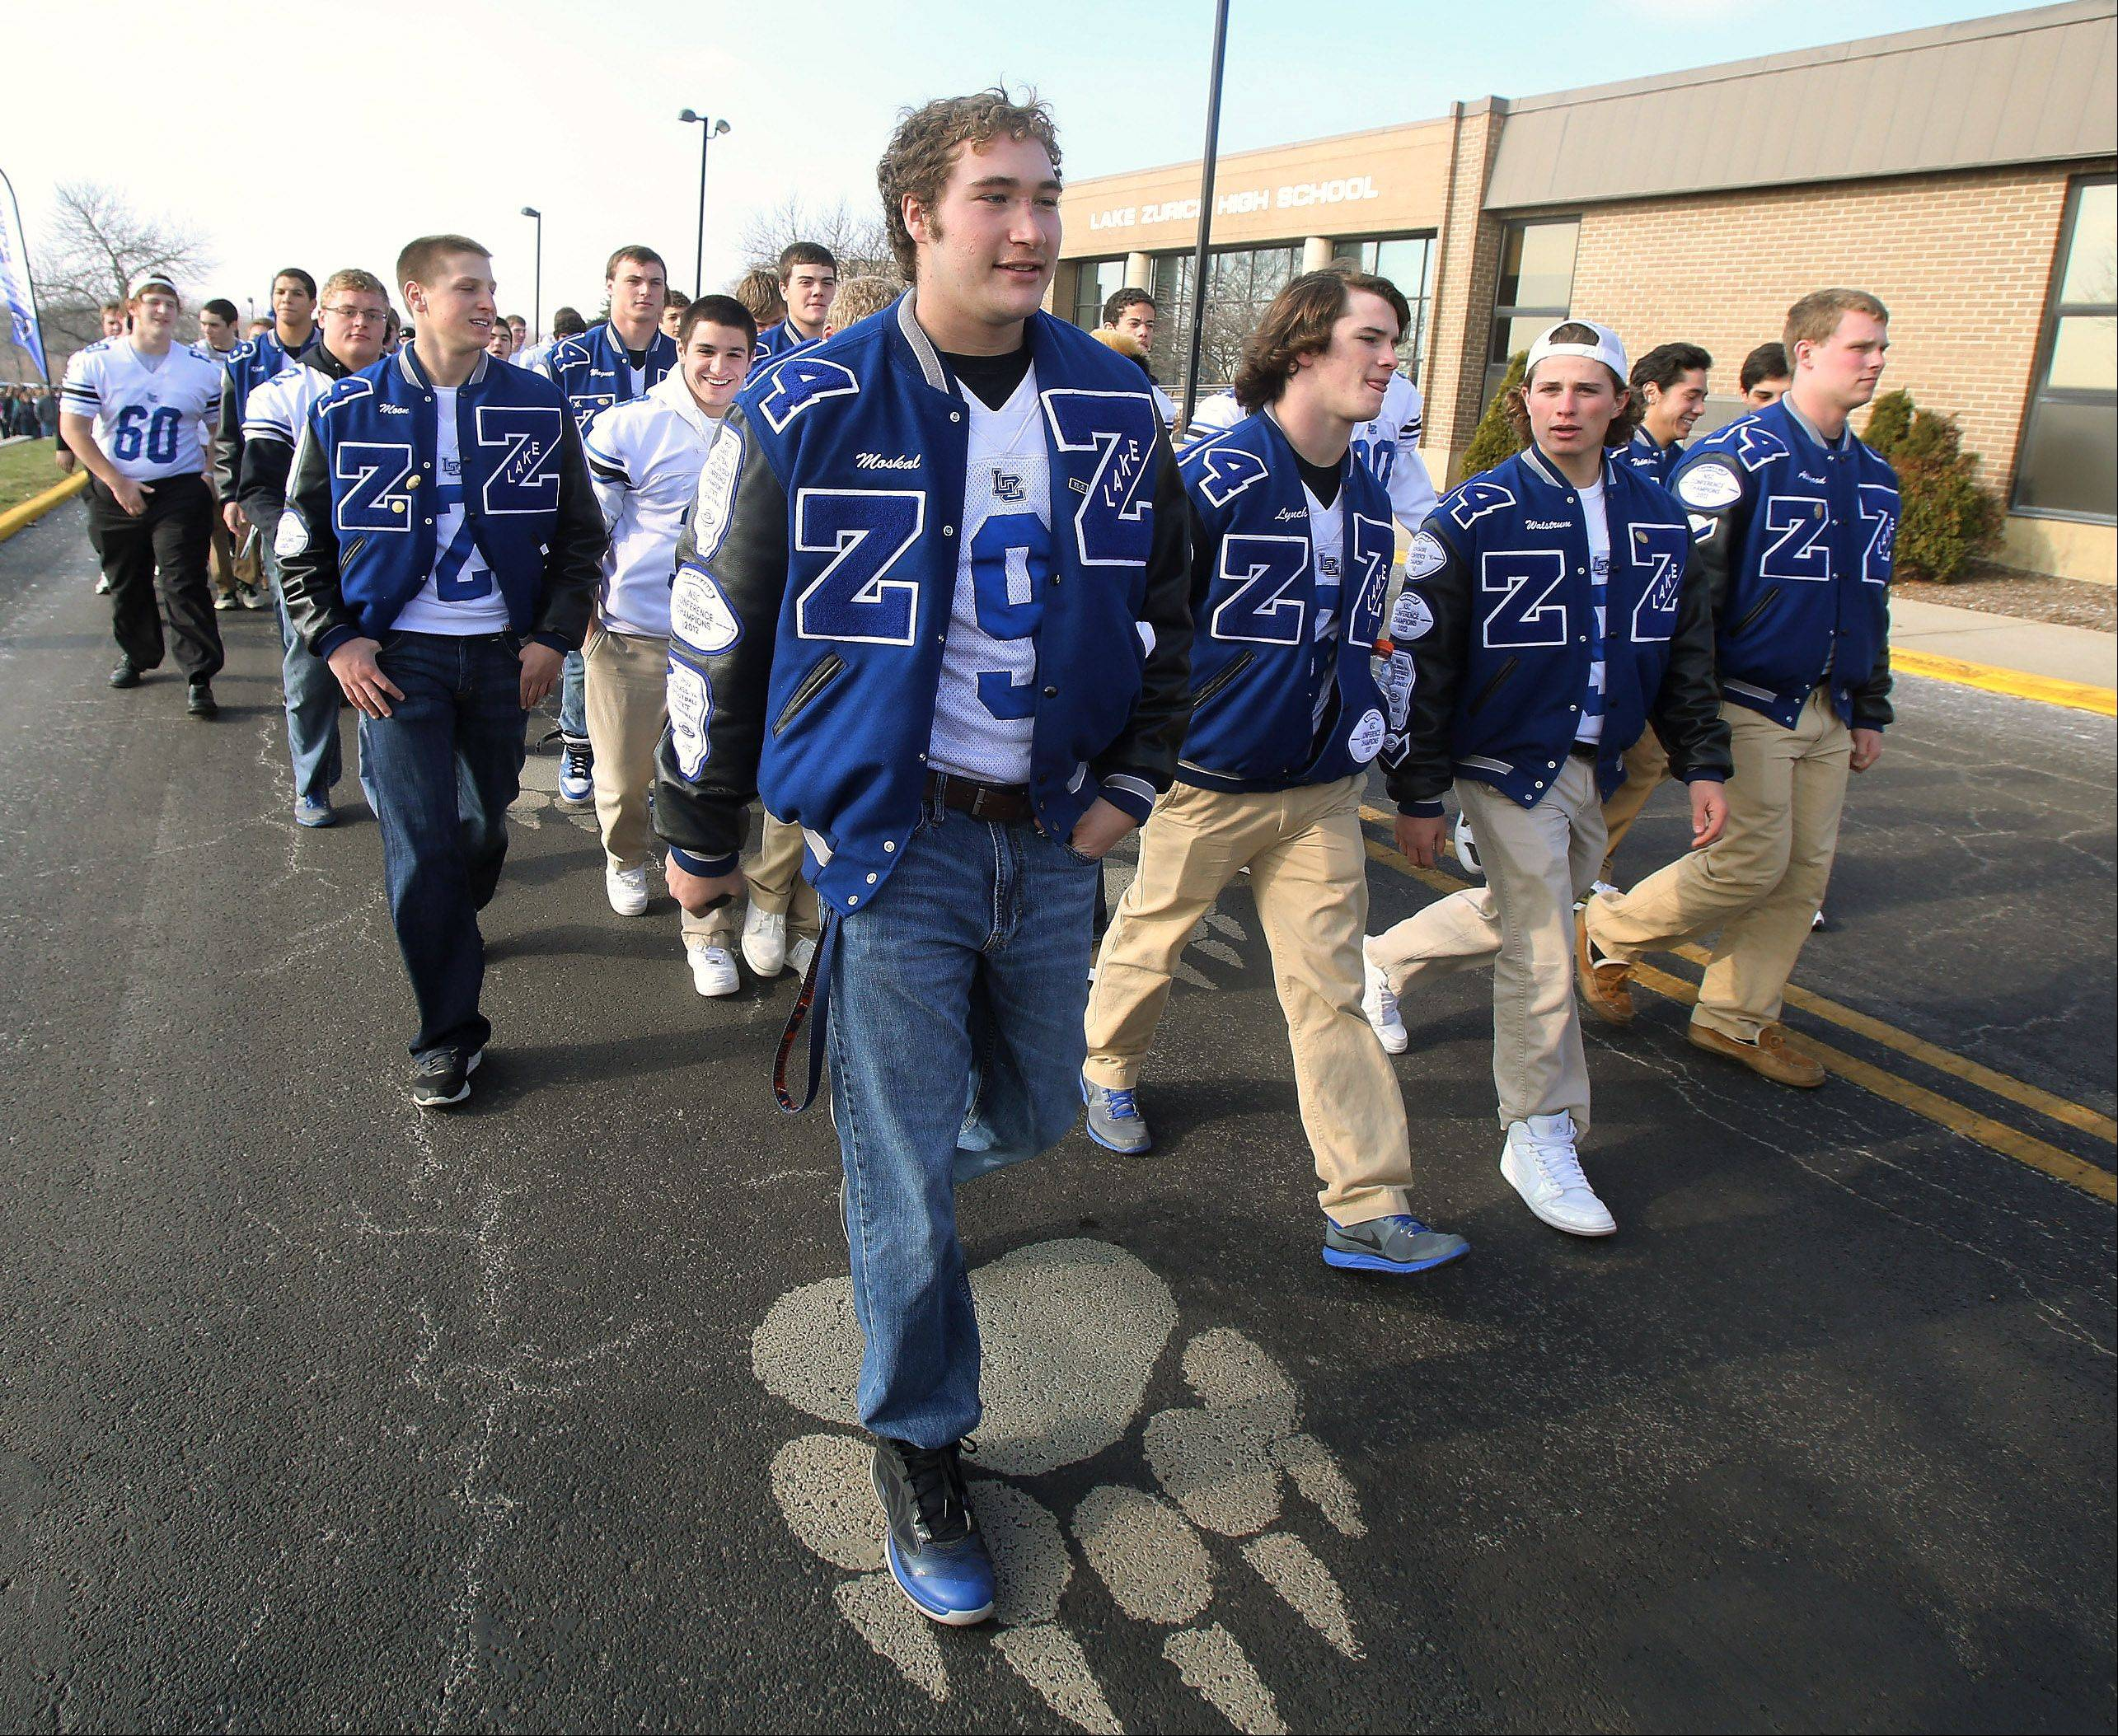 Lake Zurich celebrates football team at parade, rally